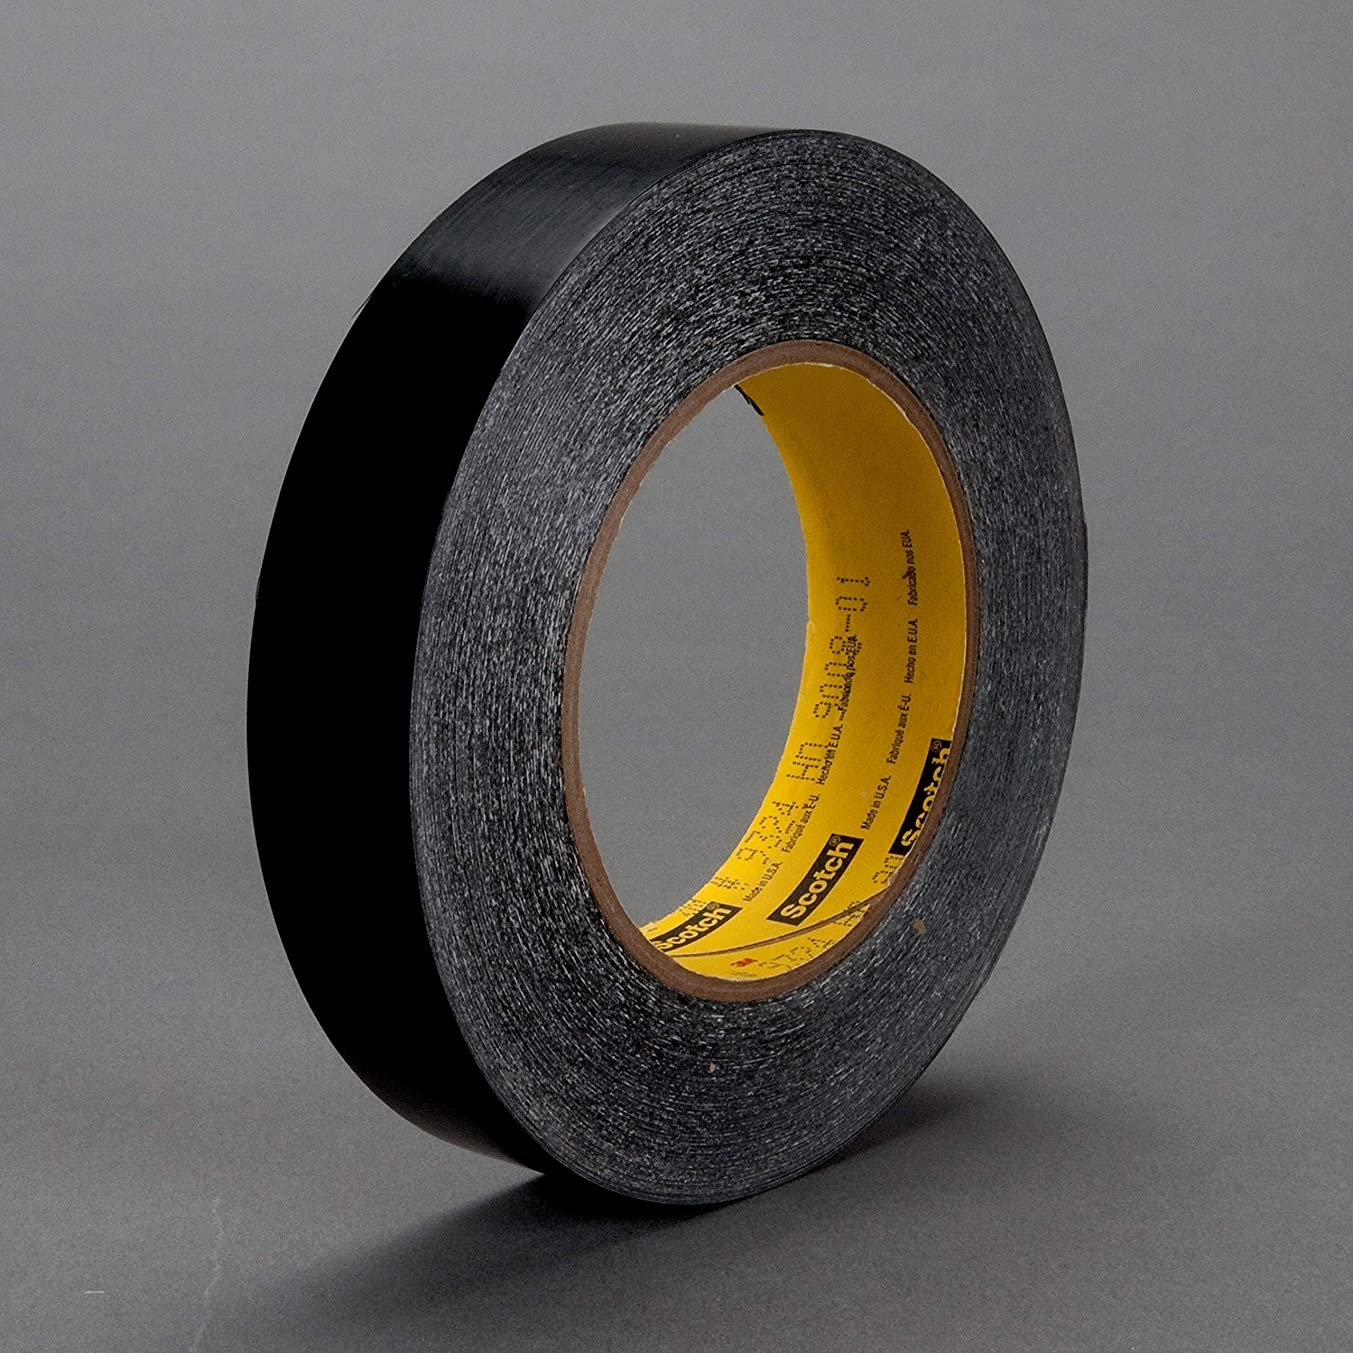 3M Squeak Reduction Tape 9324 Black, 1/2 in x 108 yd, 18 per case